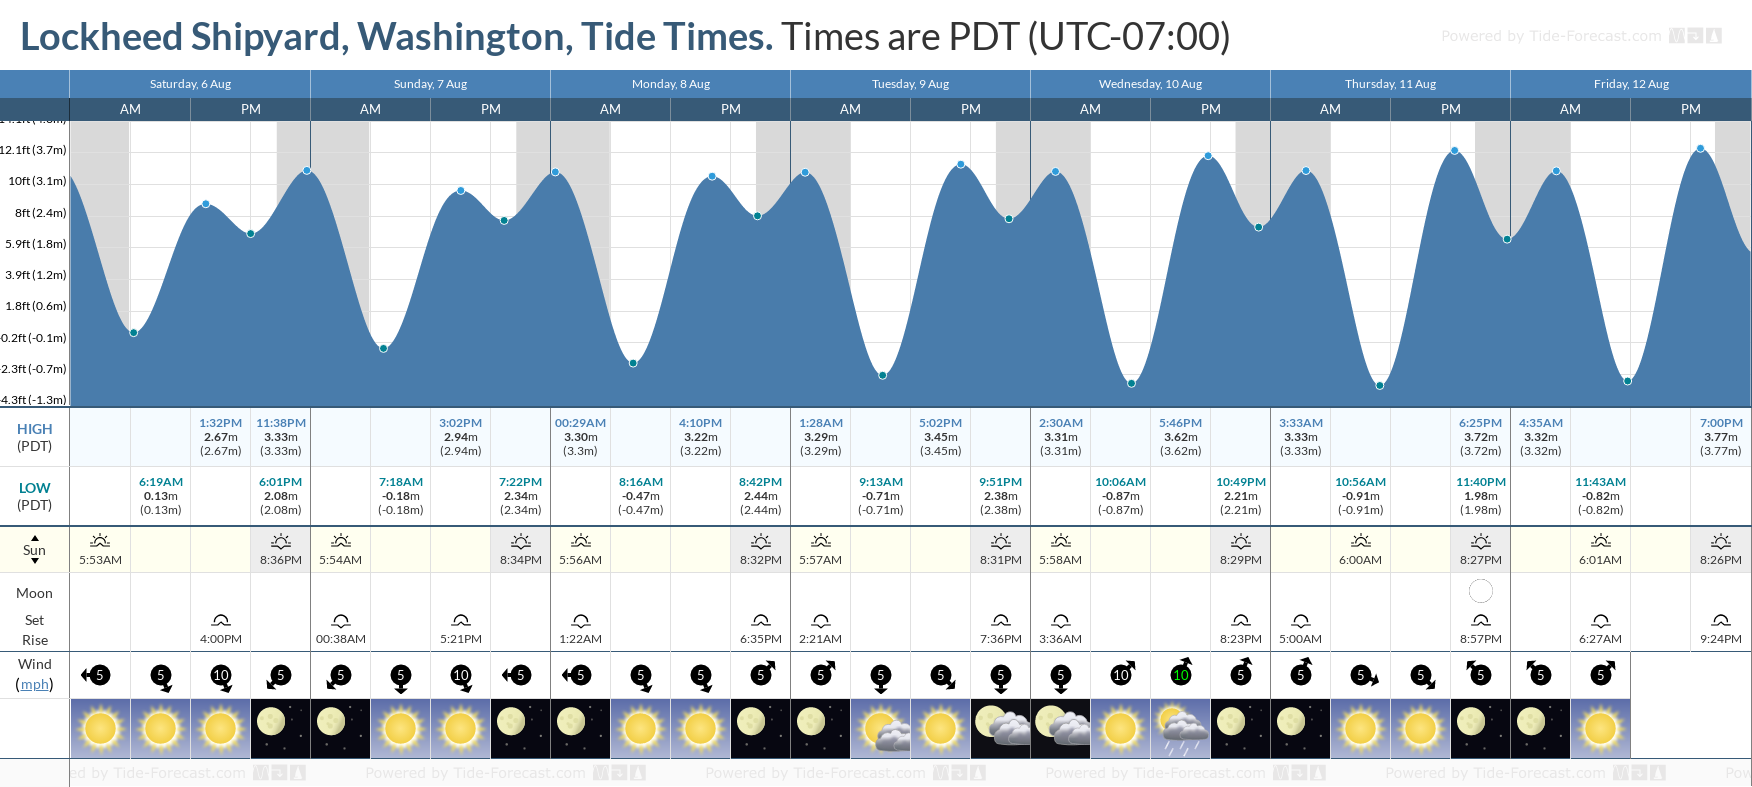 Lockheed Shipyard, Washington Tide Chart including high and low tide tide times for the next 7 days